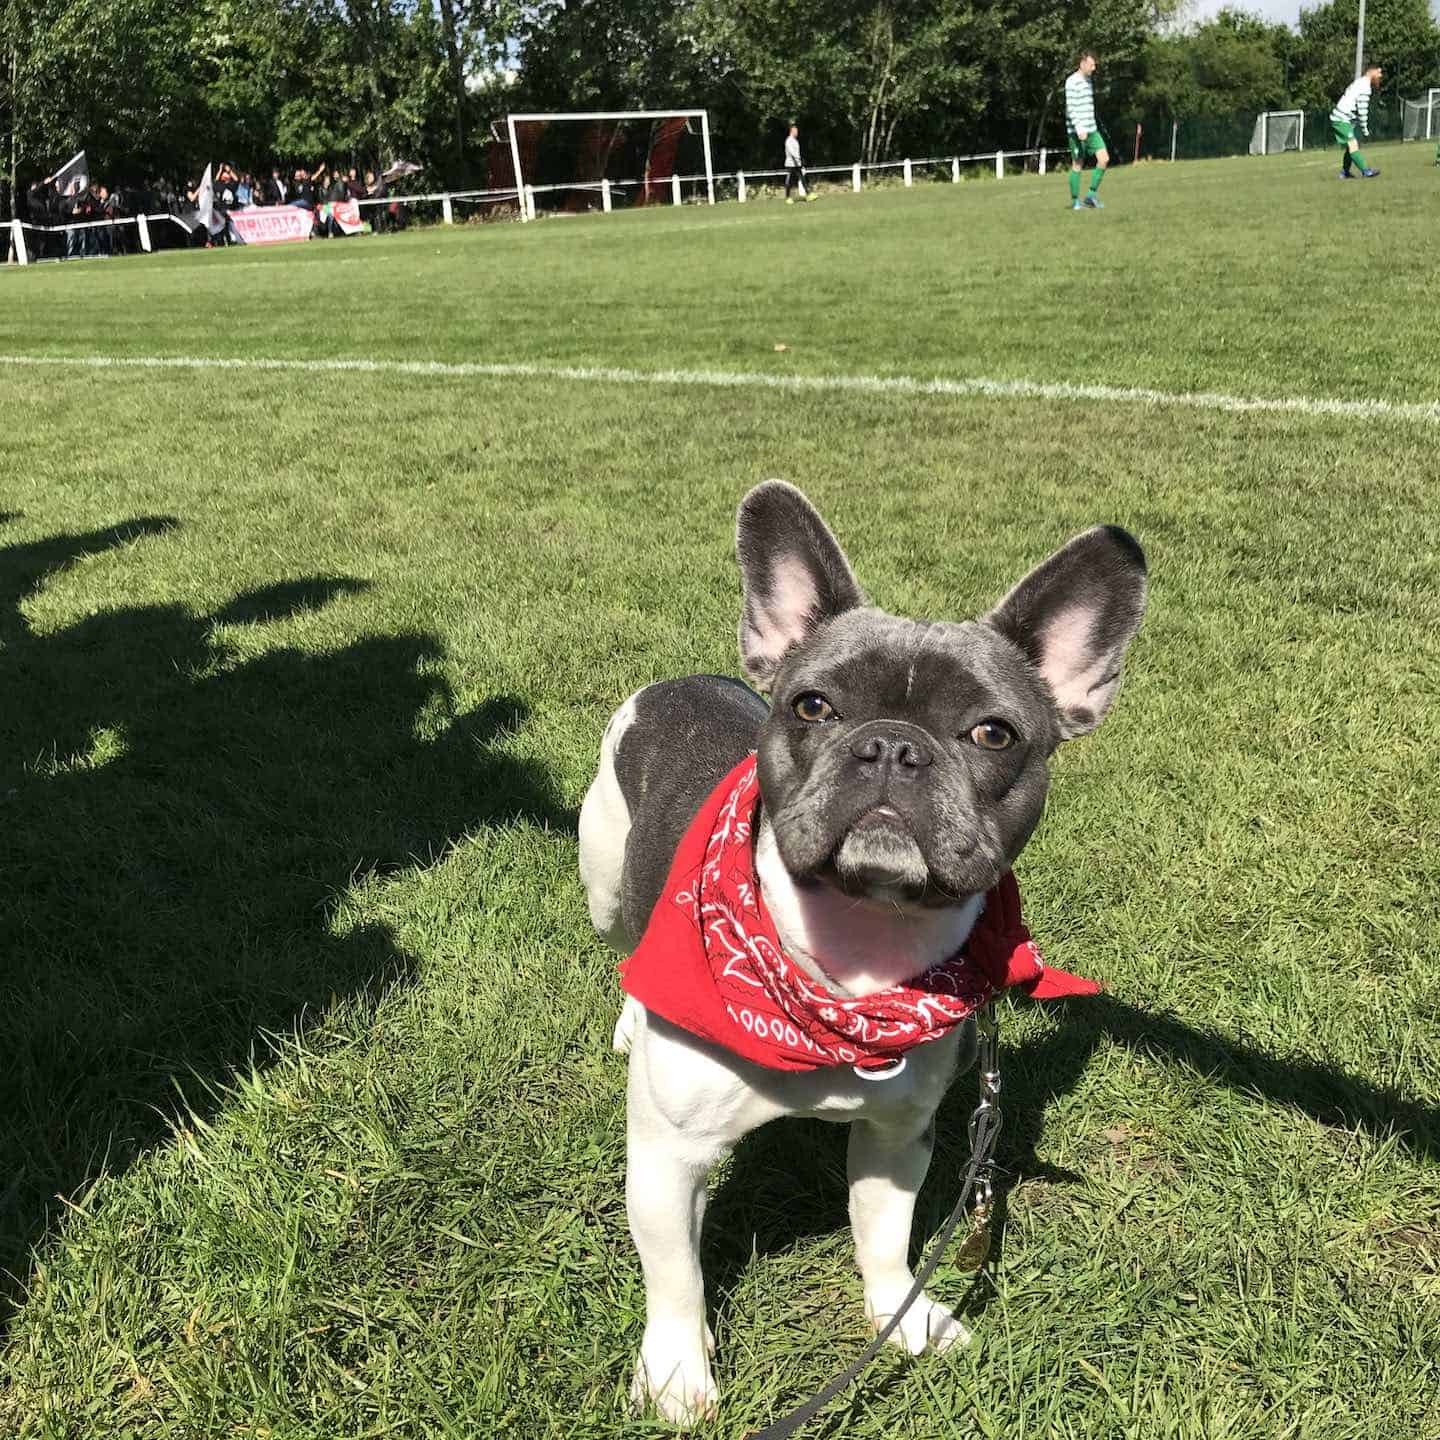 Dog-friendly Football Teams in London - Clapton Community FC